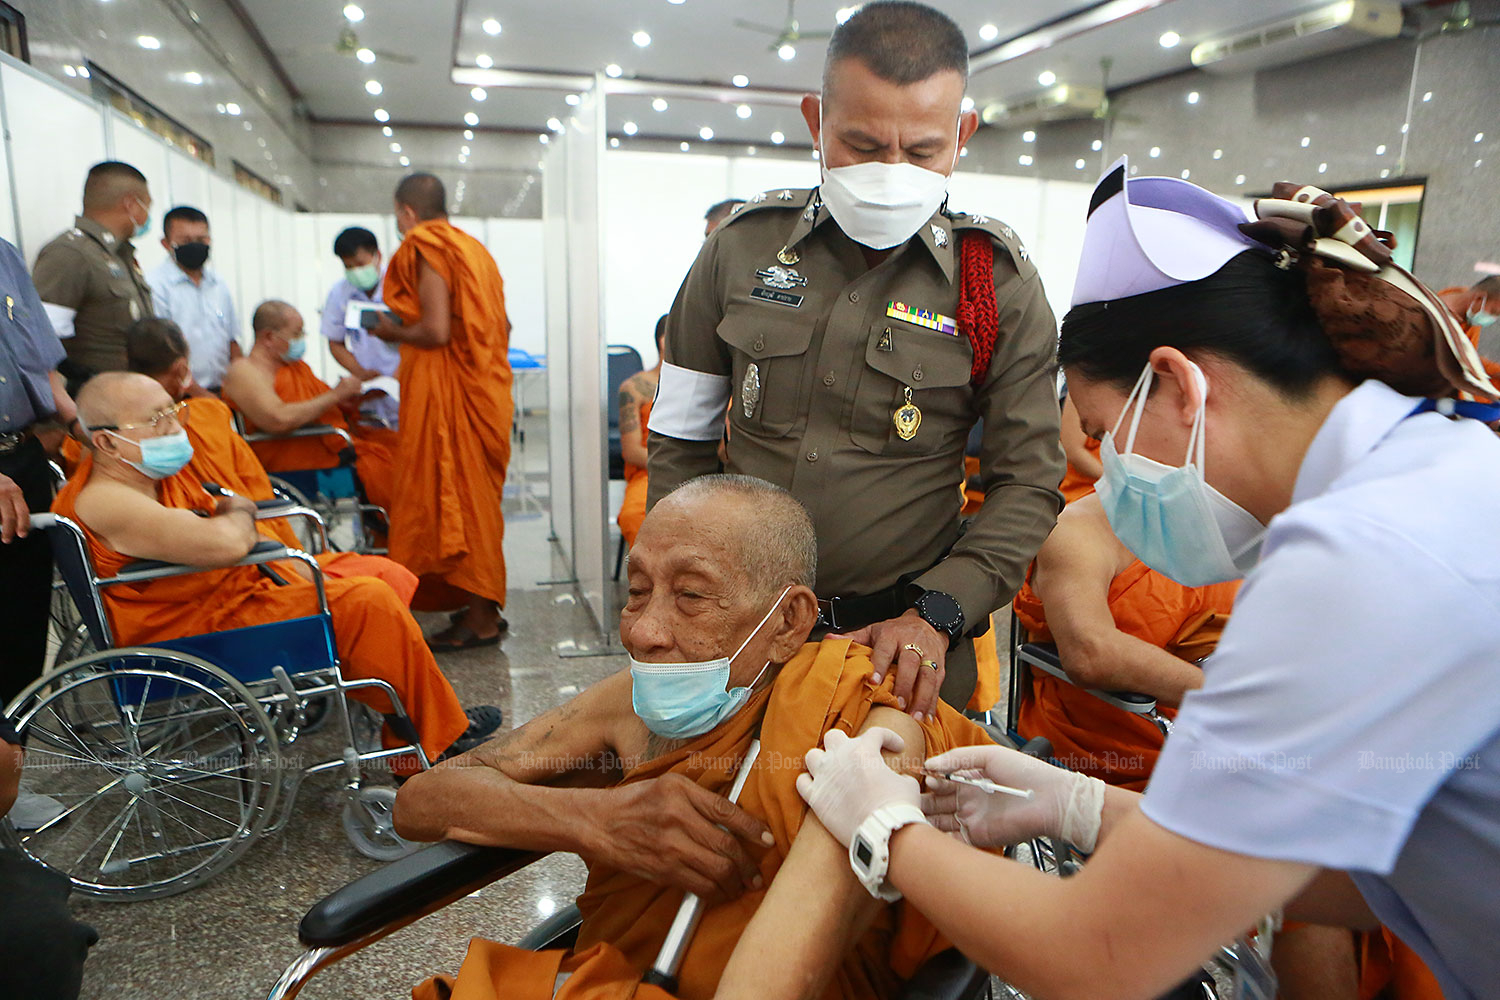 Easy does it: A nurse administers a Covid-19 vaccine jab to a monk at Wat Bang Phli Yai Klang in Samut Prakan. The temple has been added to a growing list of non-hospital vaccination points for the nationwide mass inoculation campaign. (Photo: Somchai Poomlard)